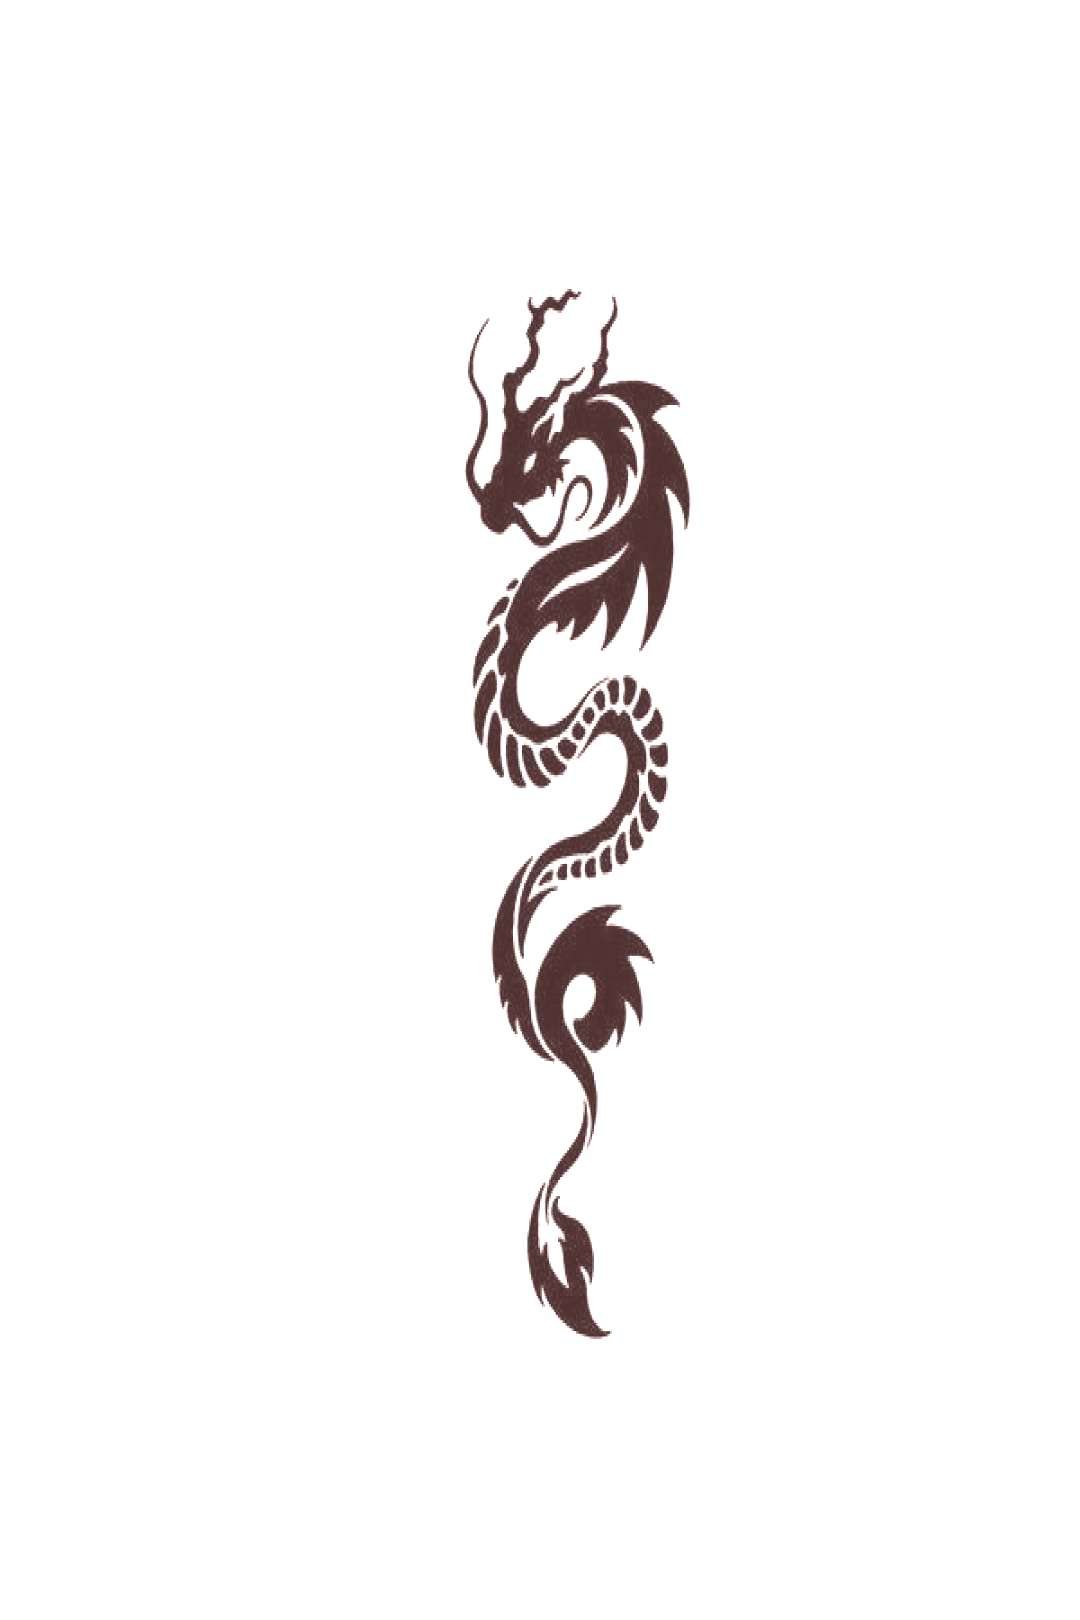 Naruto Tattoo design by AlishaArt liked on Polyvore featuring accessories anYou can find Naruto and